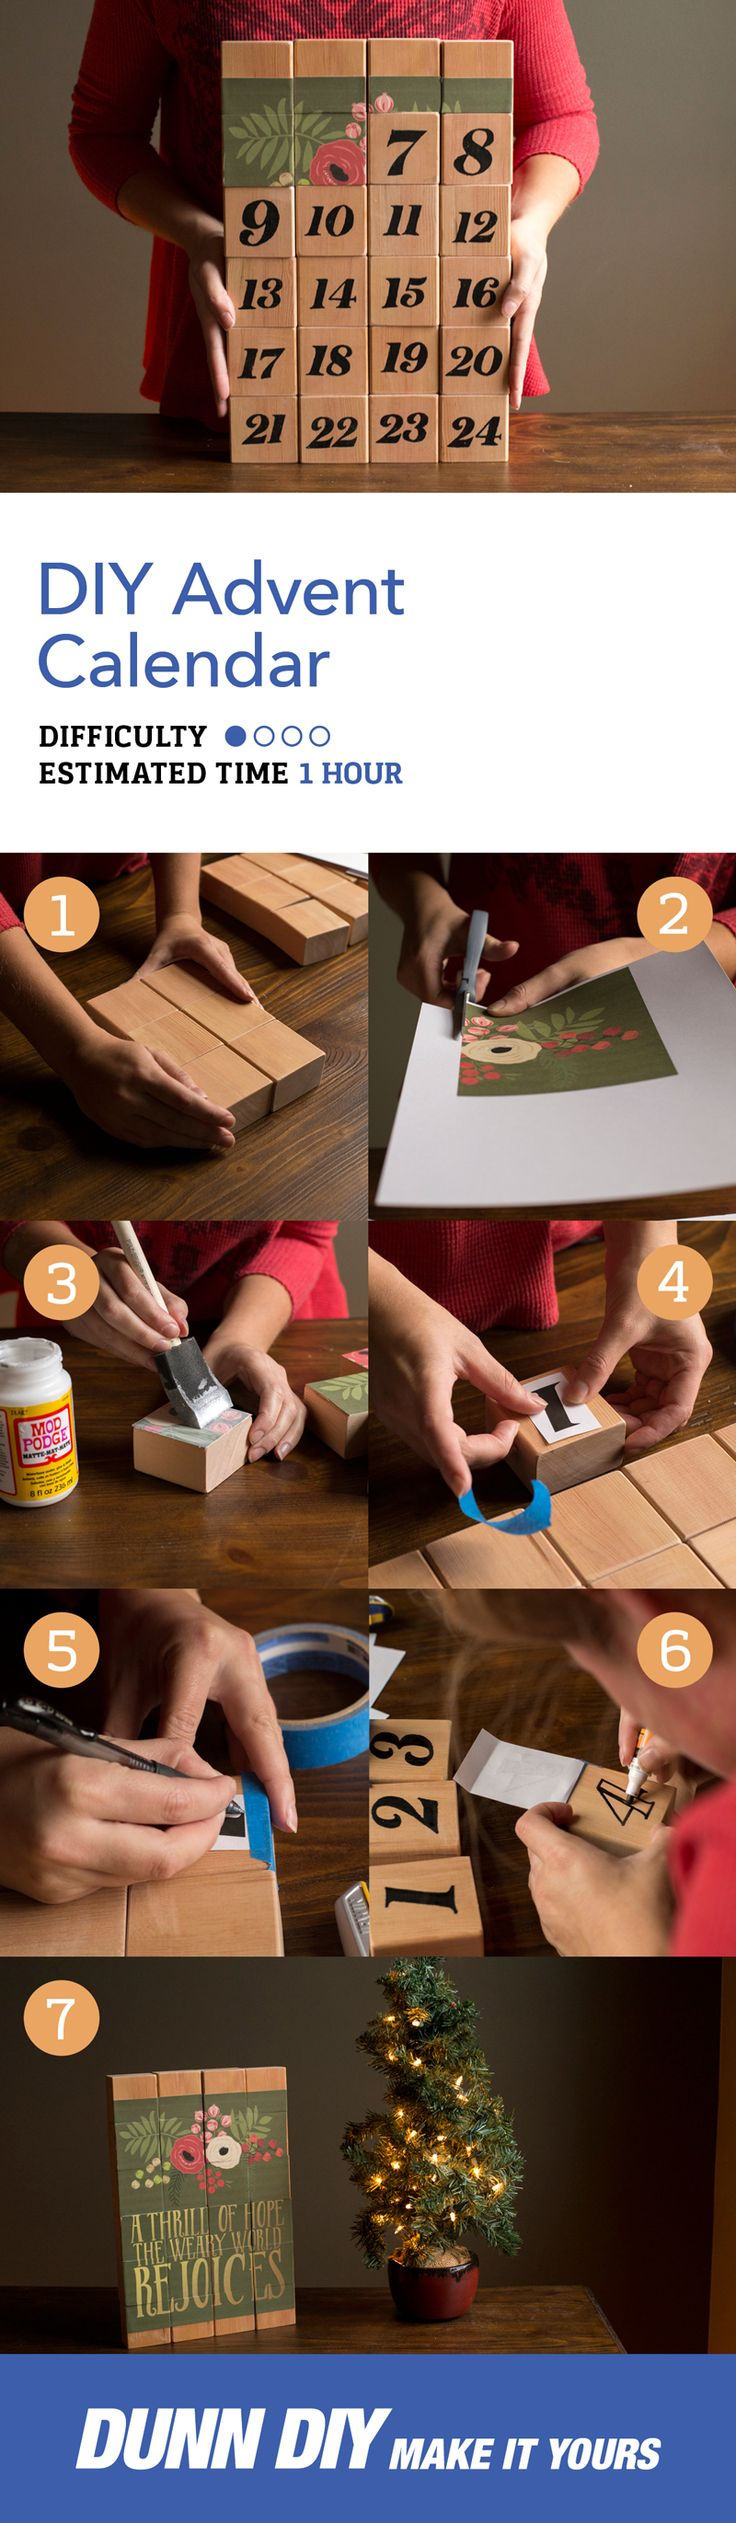 Christmas is almost here and there's nothing like counting down the days - no matter how old you are. This is a simple, fun, DIY advent calendar that you can easily put together and enjoy throughout December.